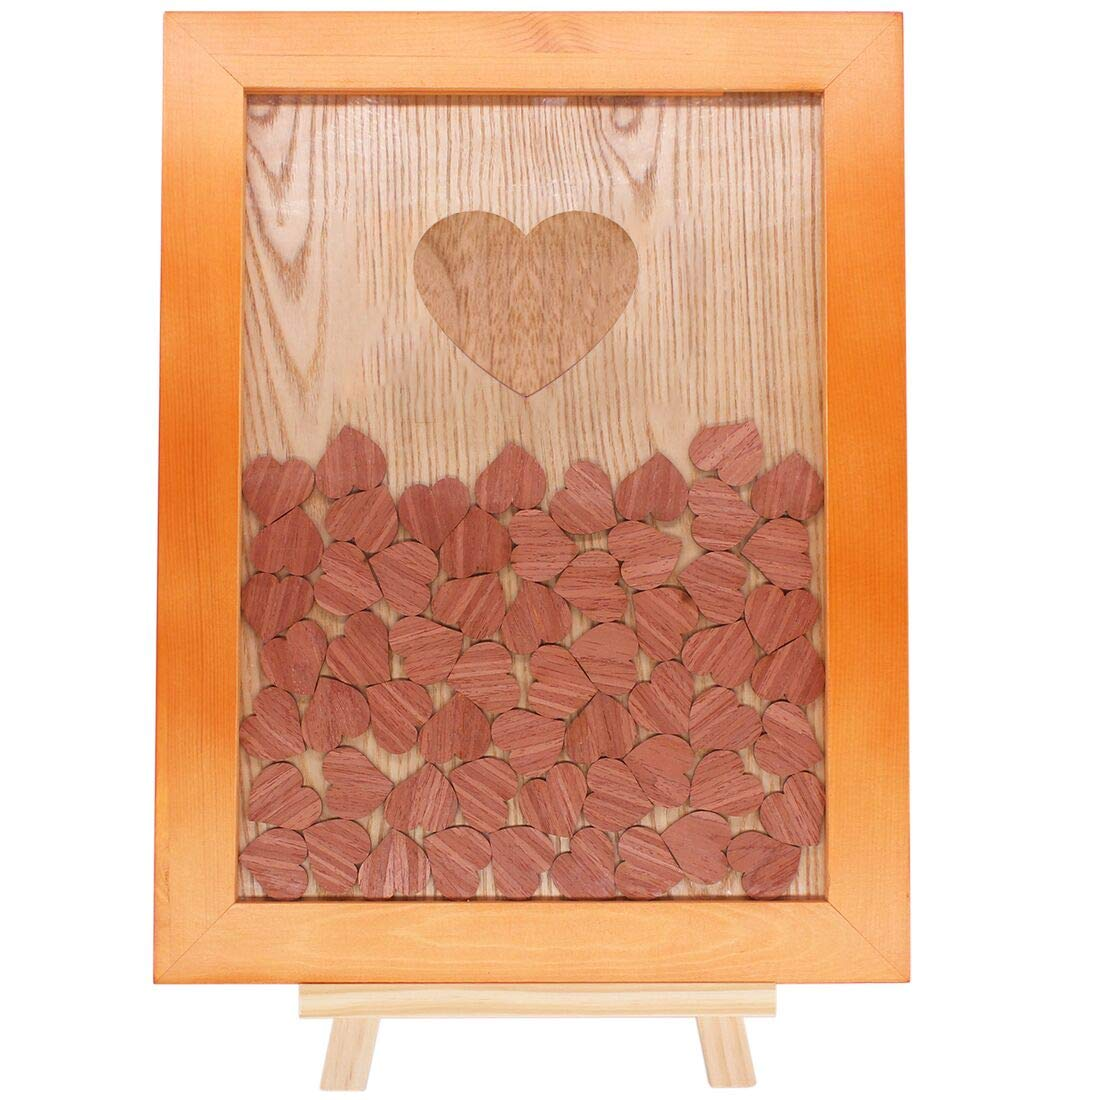 Creawoo Nature Wooden Frame Wedding Guest Book Alternative, Beautiful Wedding Decoration 90pcs Wooden Drop Hearts Include Wood Stand